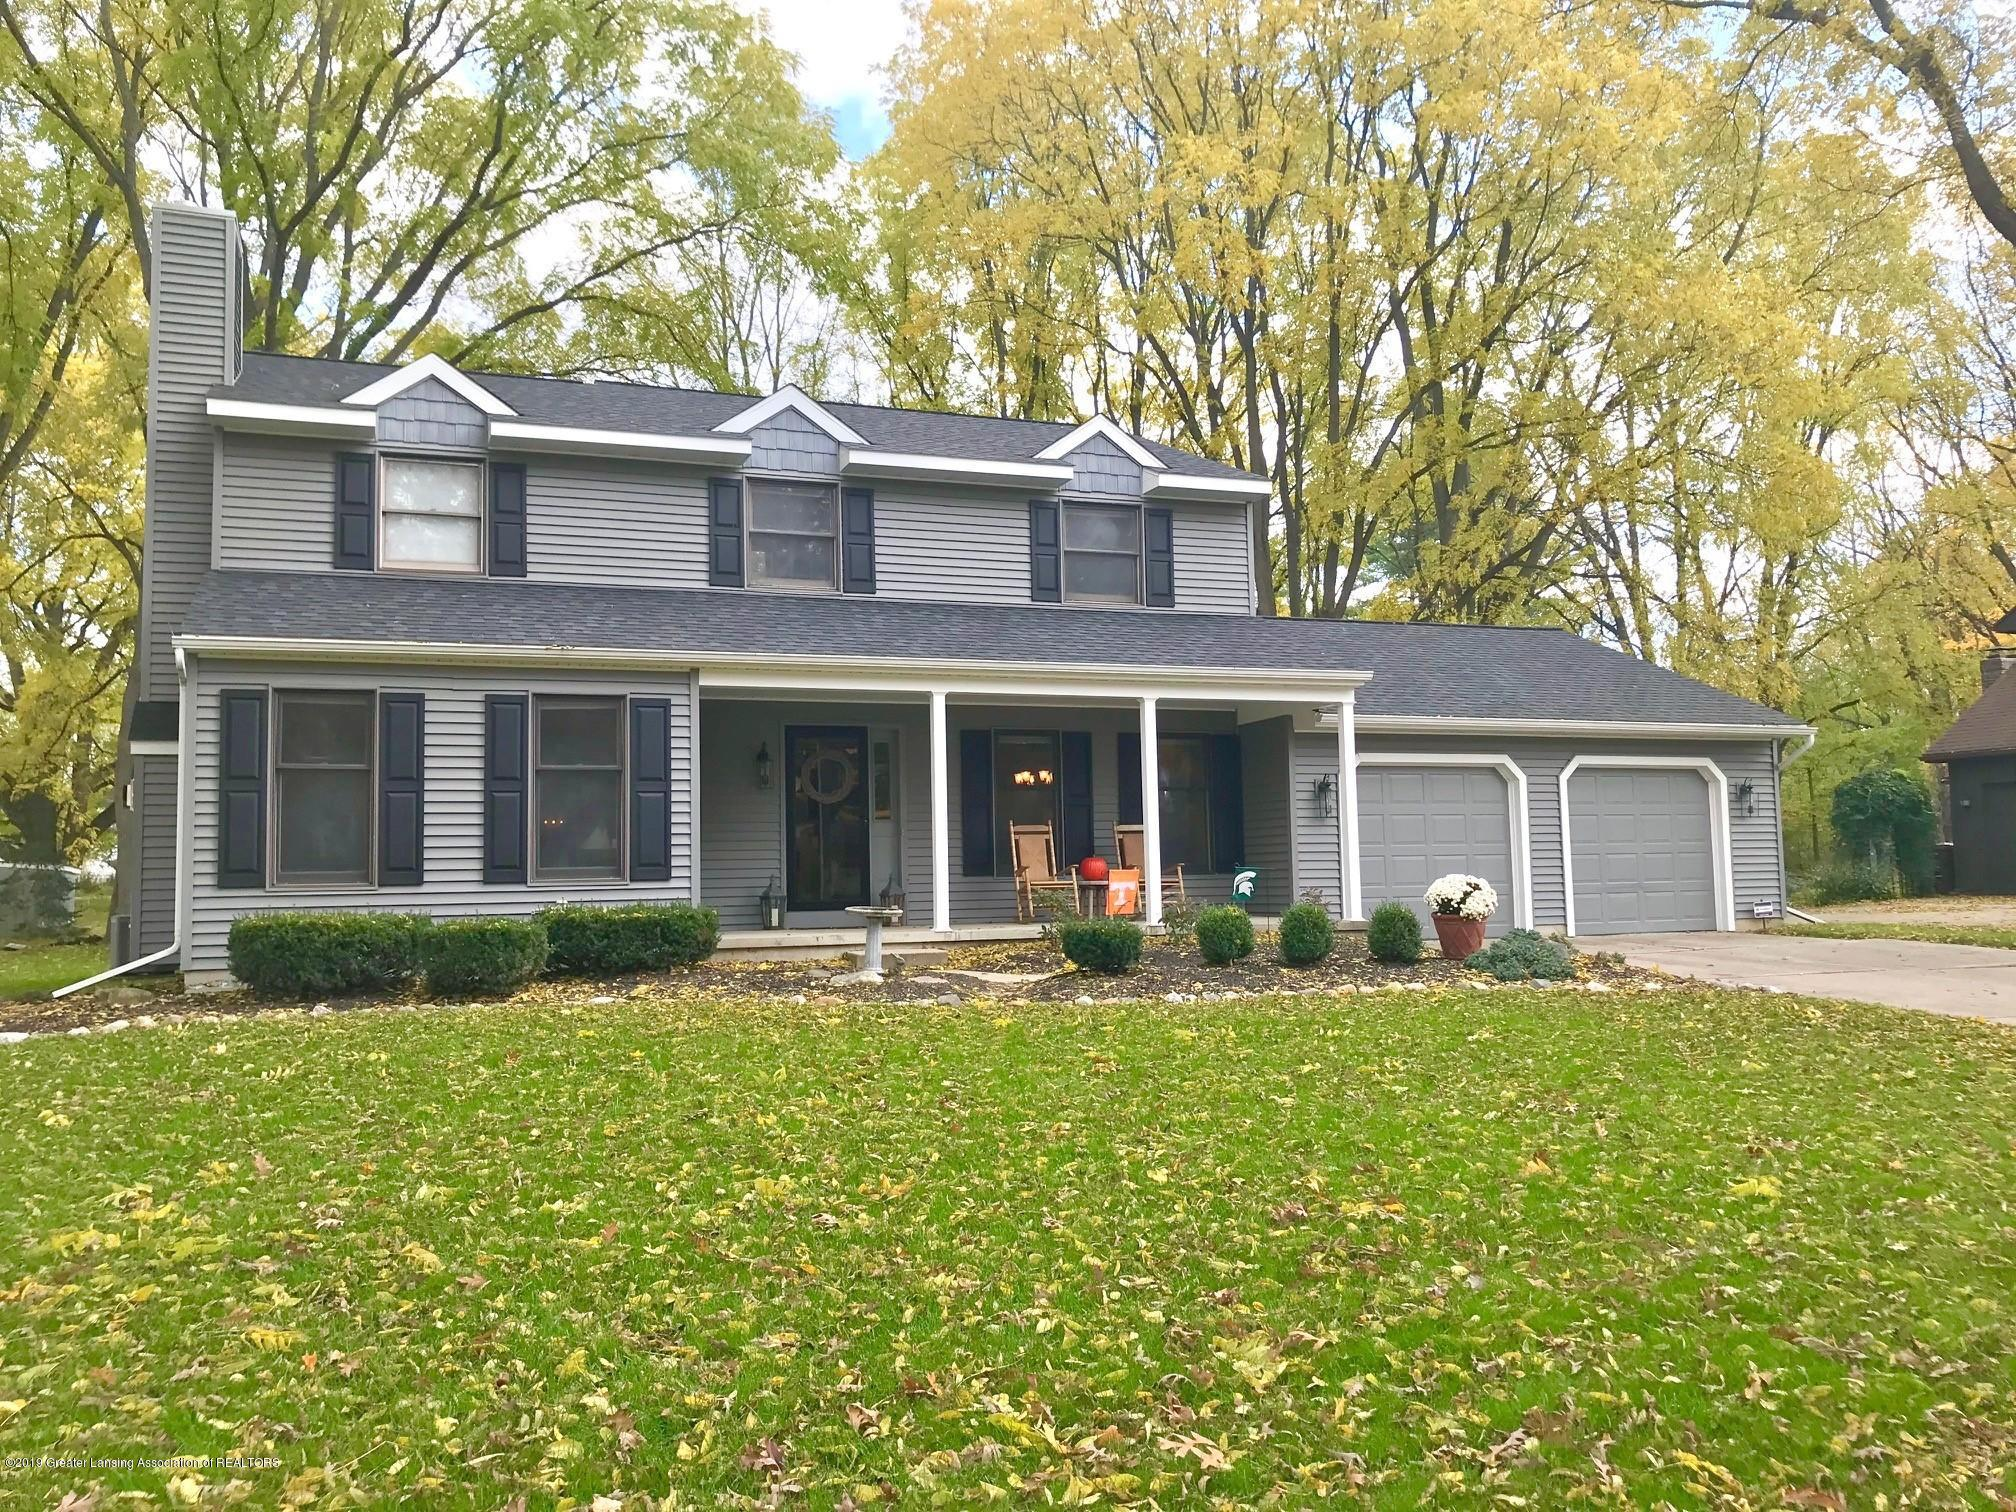 12822 Oneida Woods Trail - Exterior Front - 1